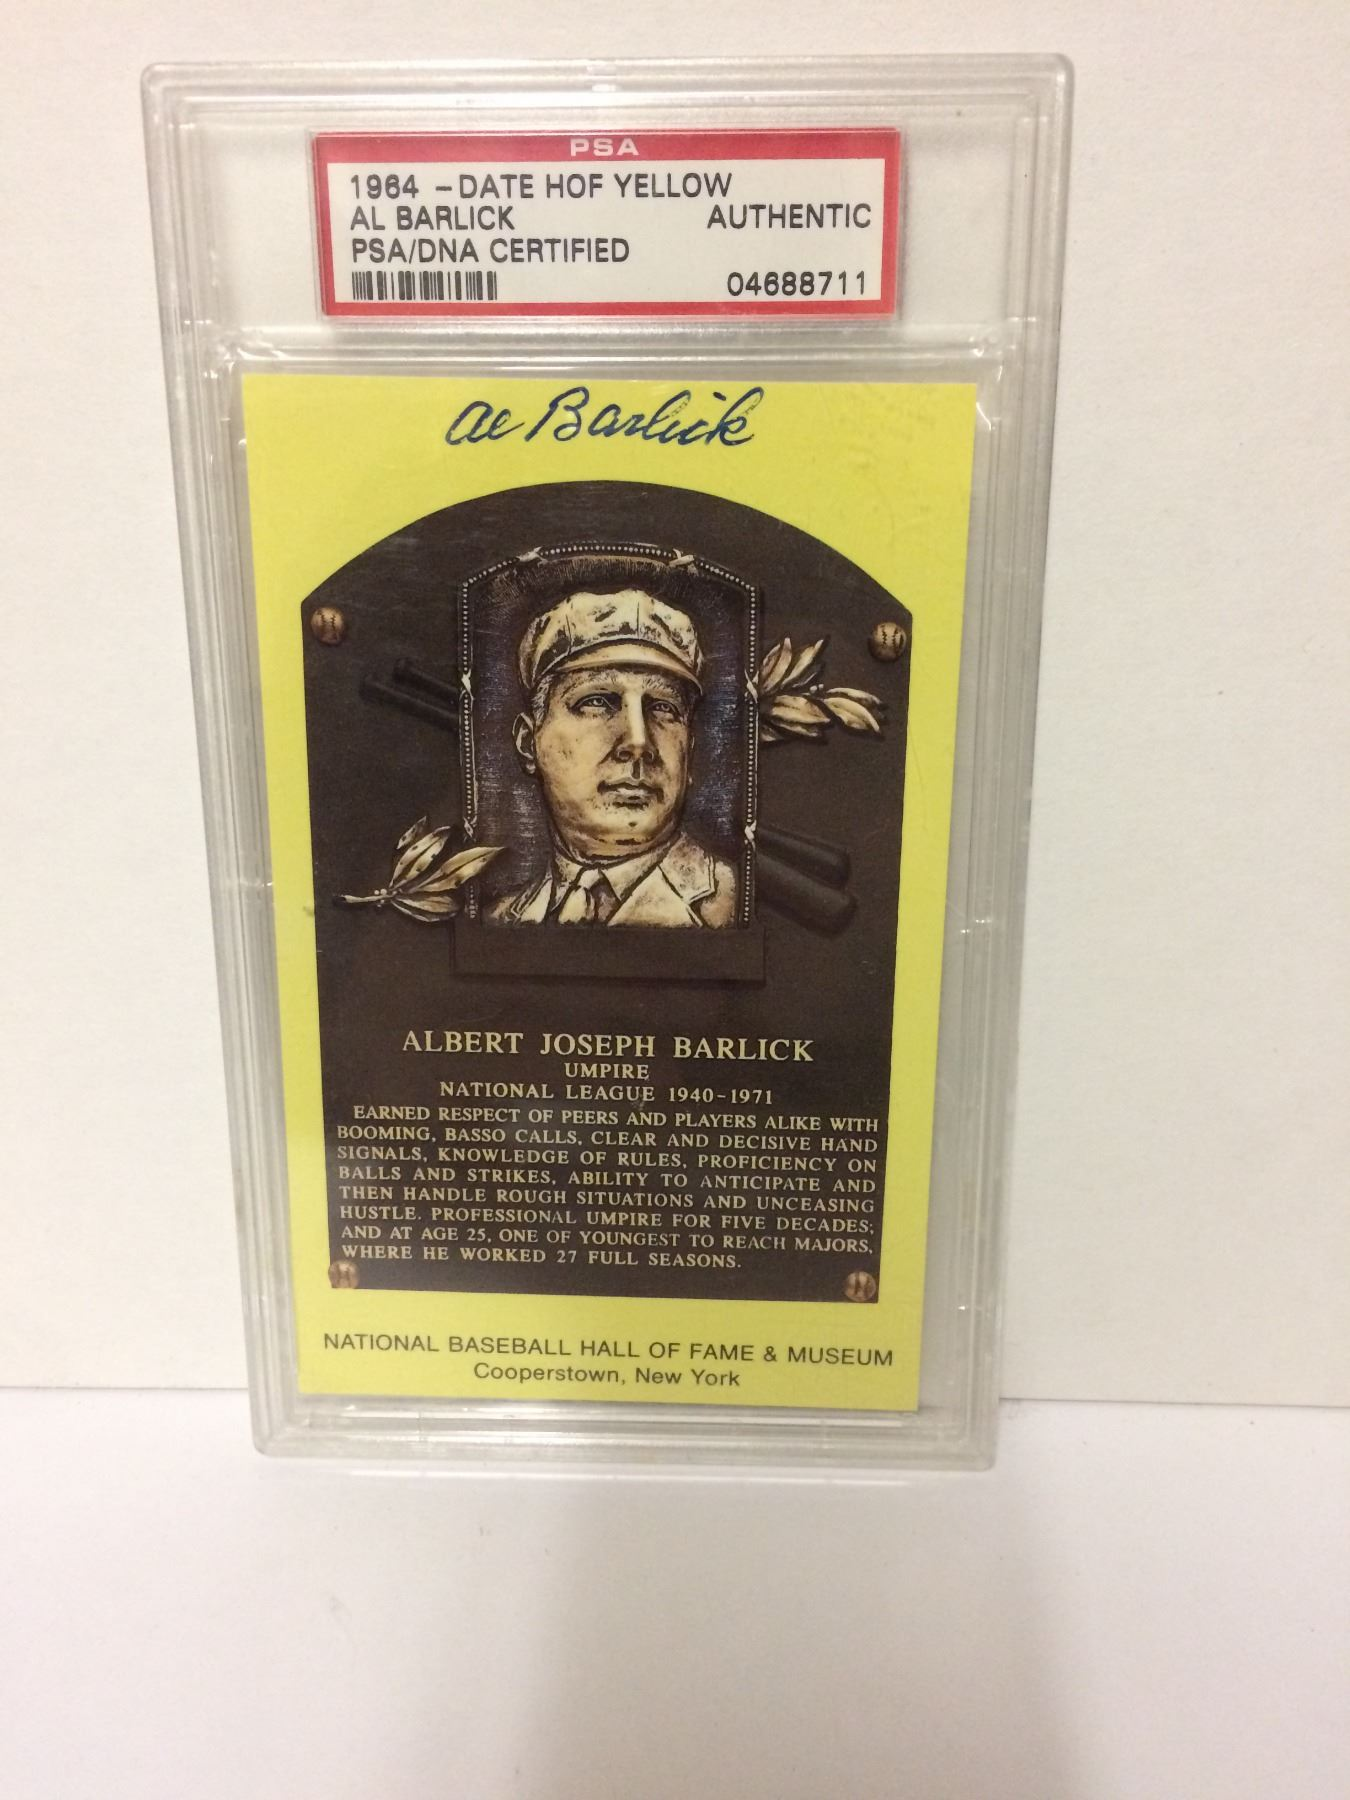 Autographed 1964 Date Hof Yellow Al Barlick Psadna Certified Baseball Trading Card Authentic